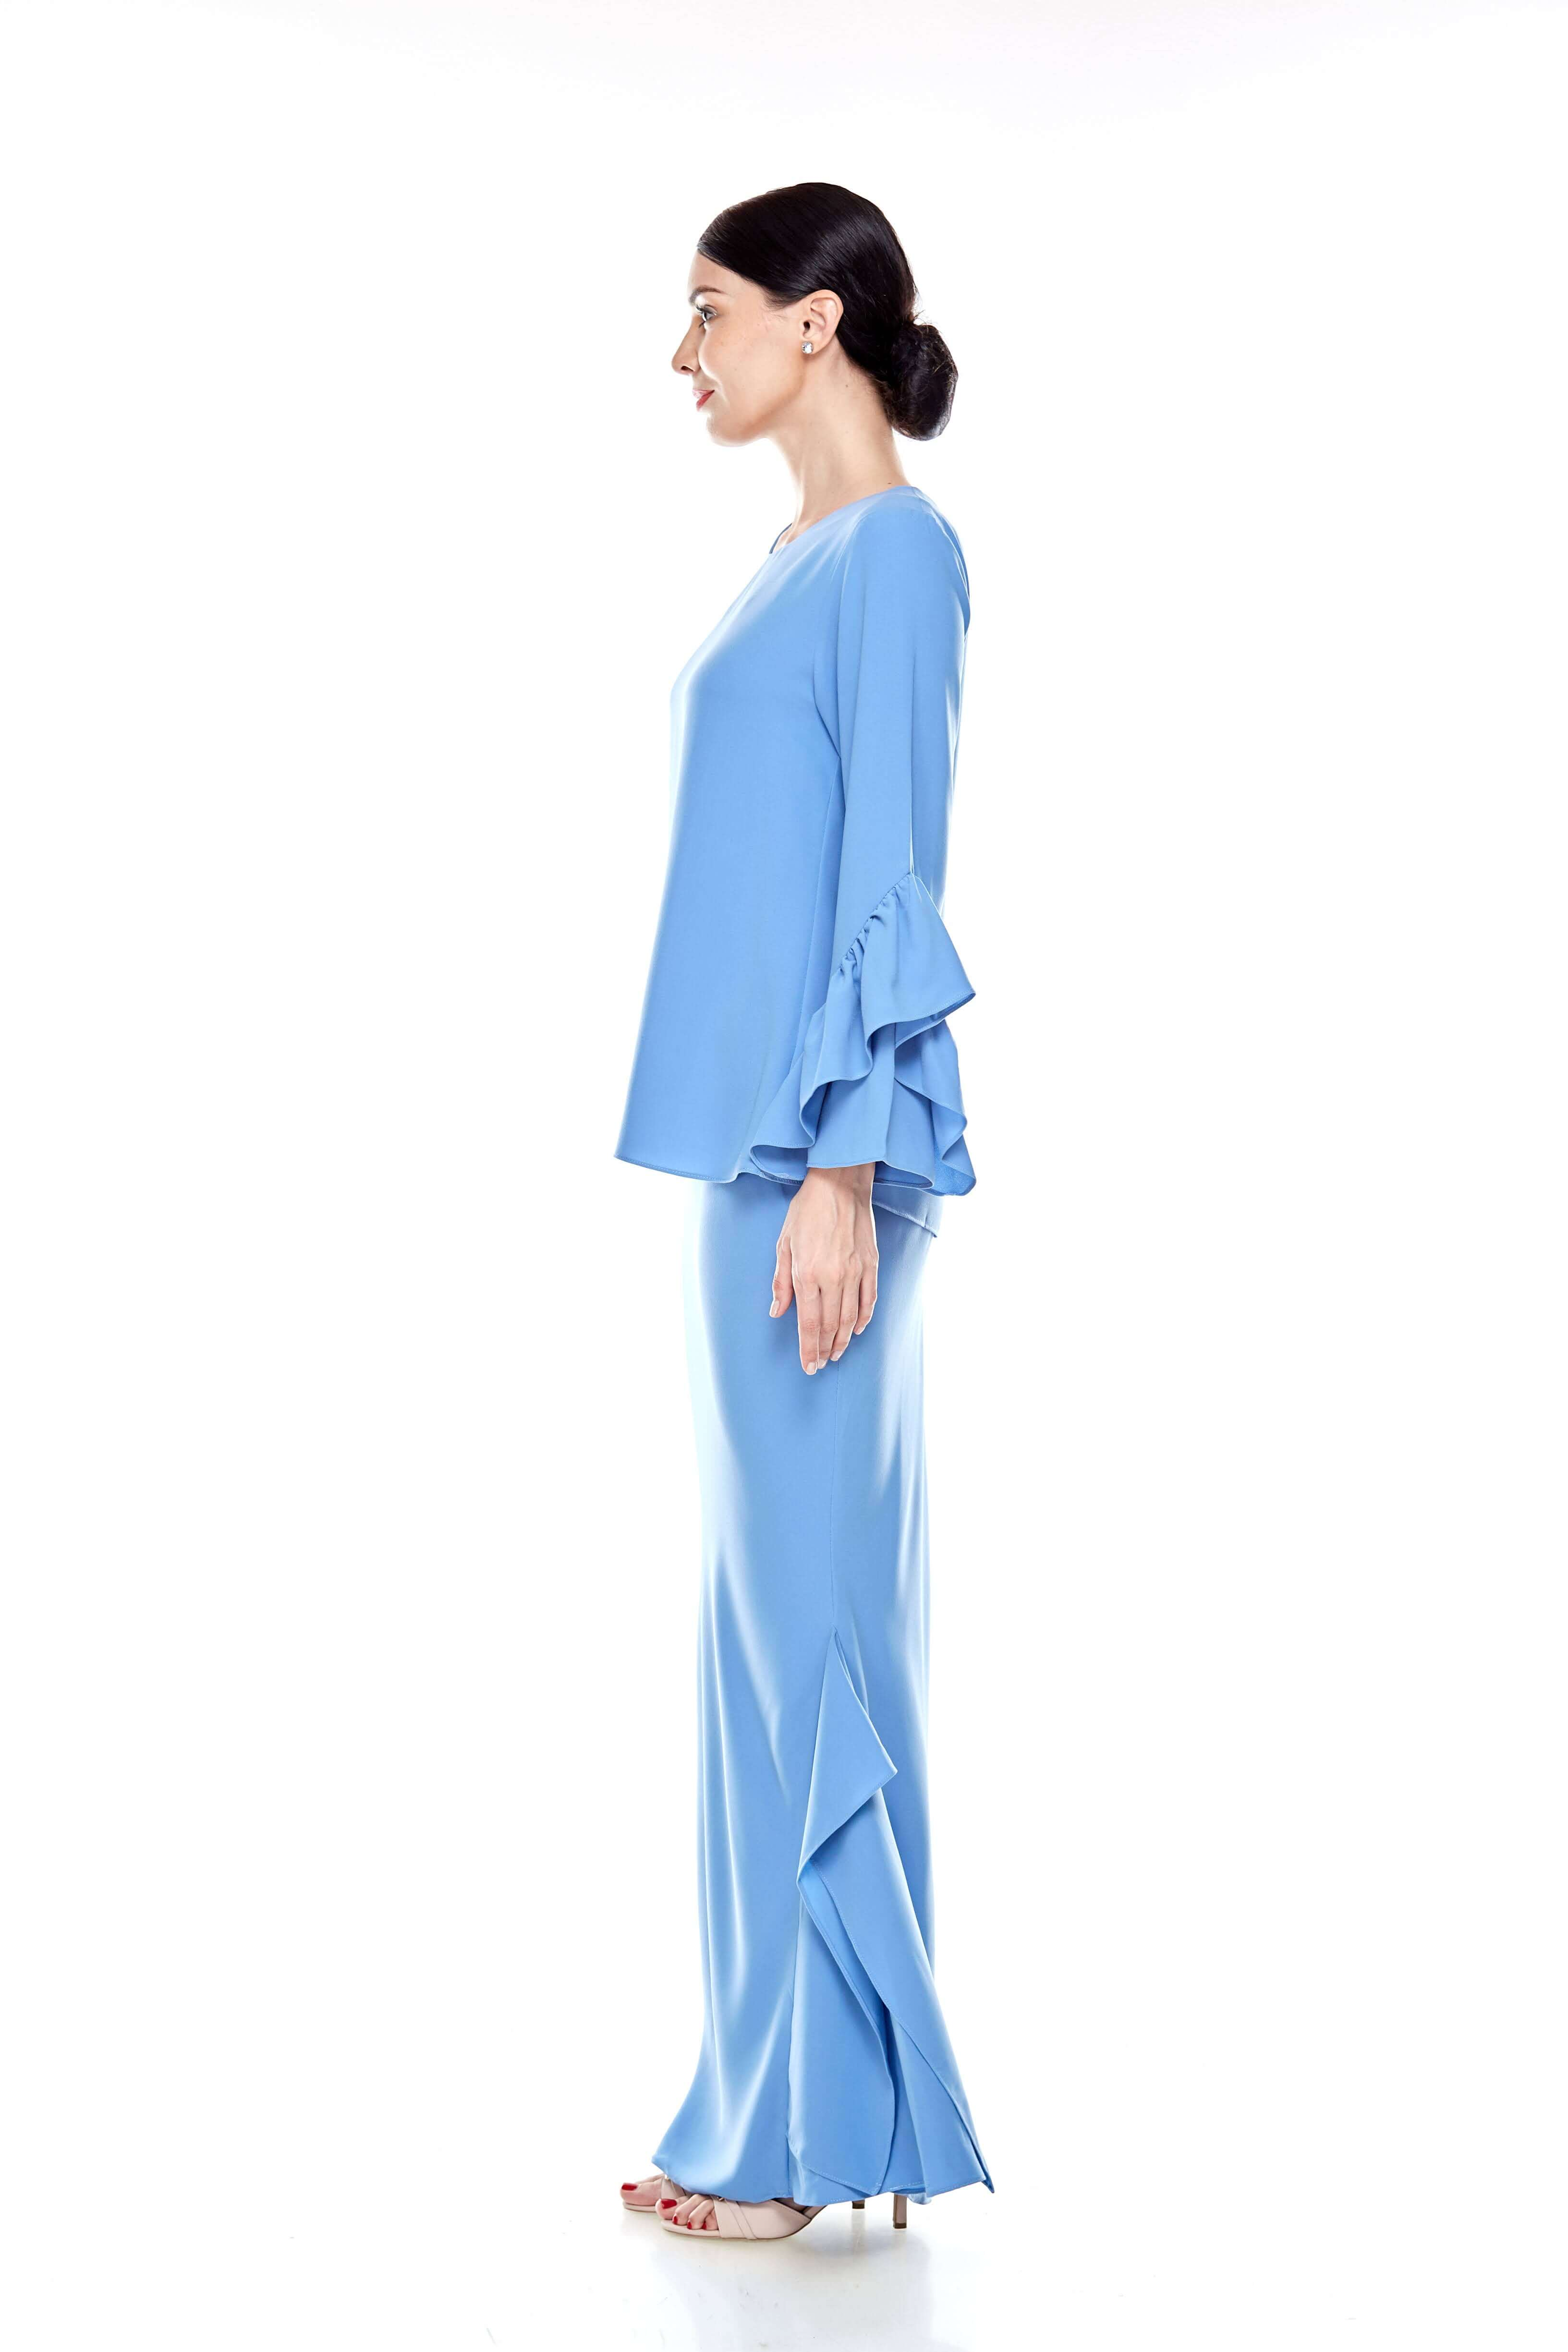 Baby Blue Round Neck Top With Ruffle Sleeve (4)